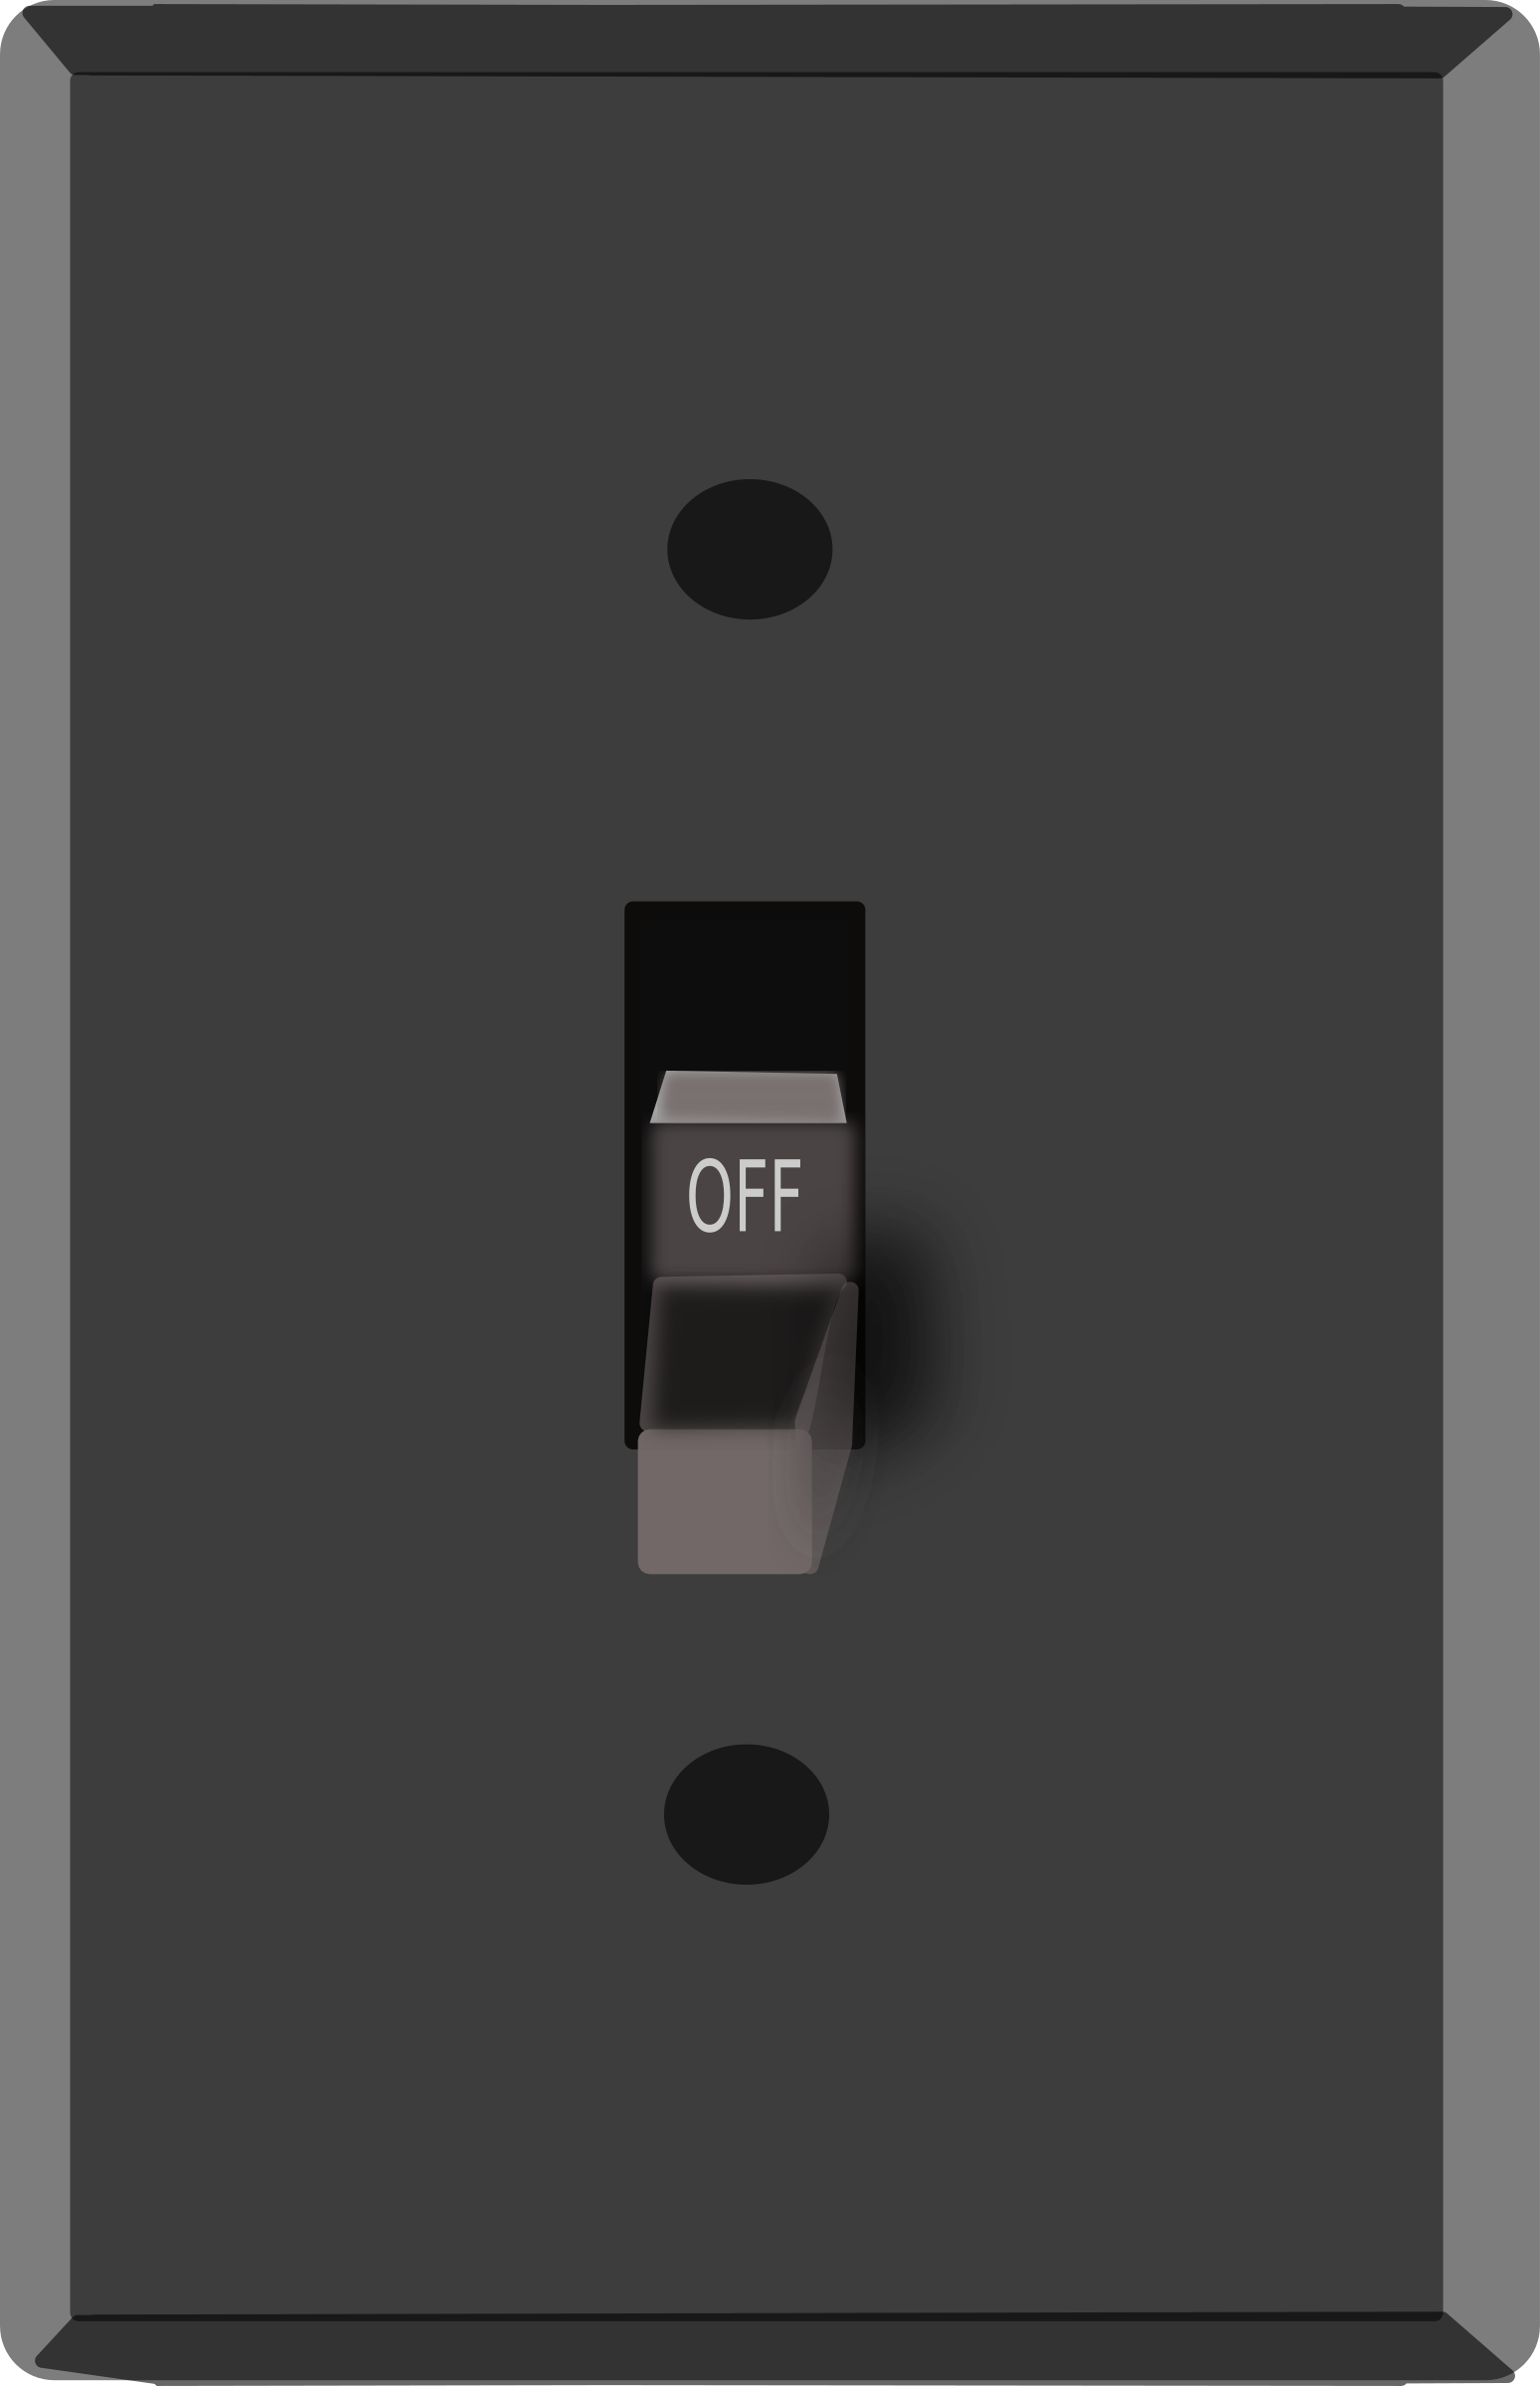 Light switch off by speciwoman